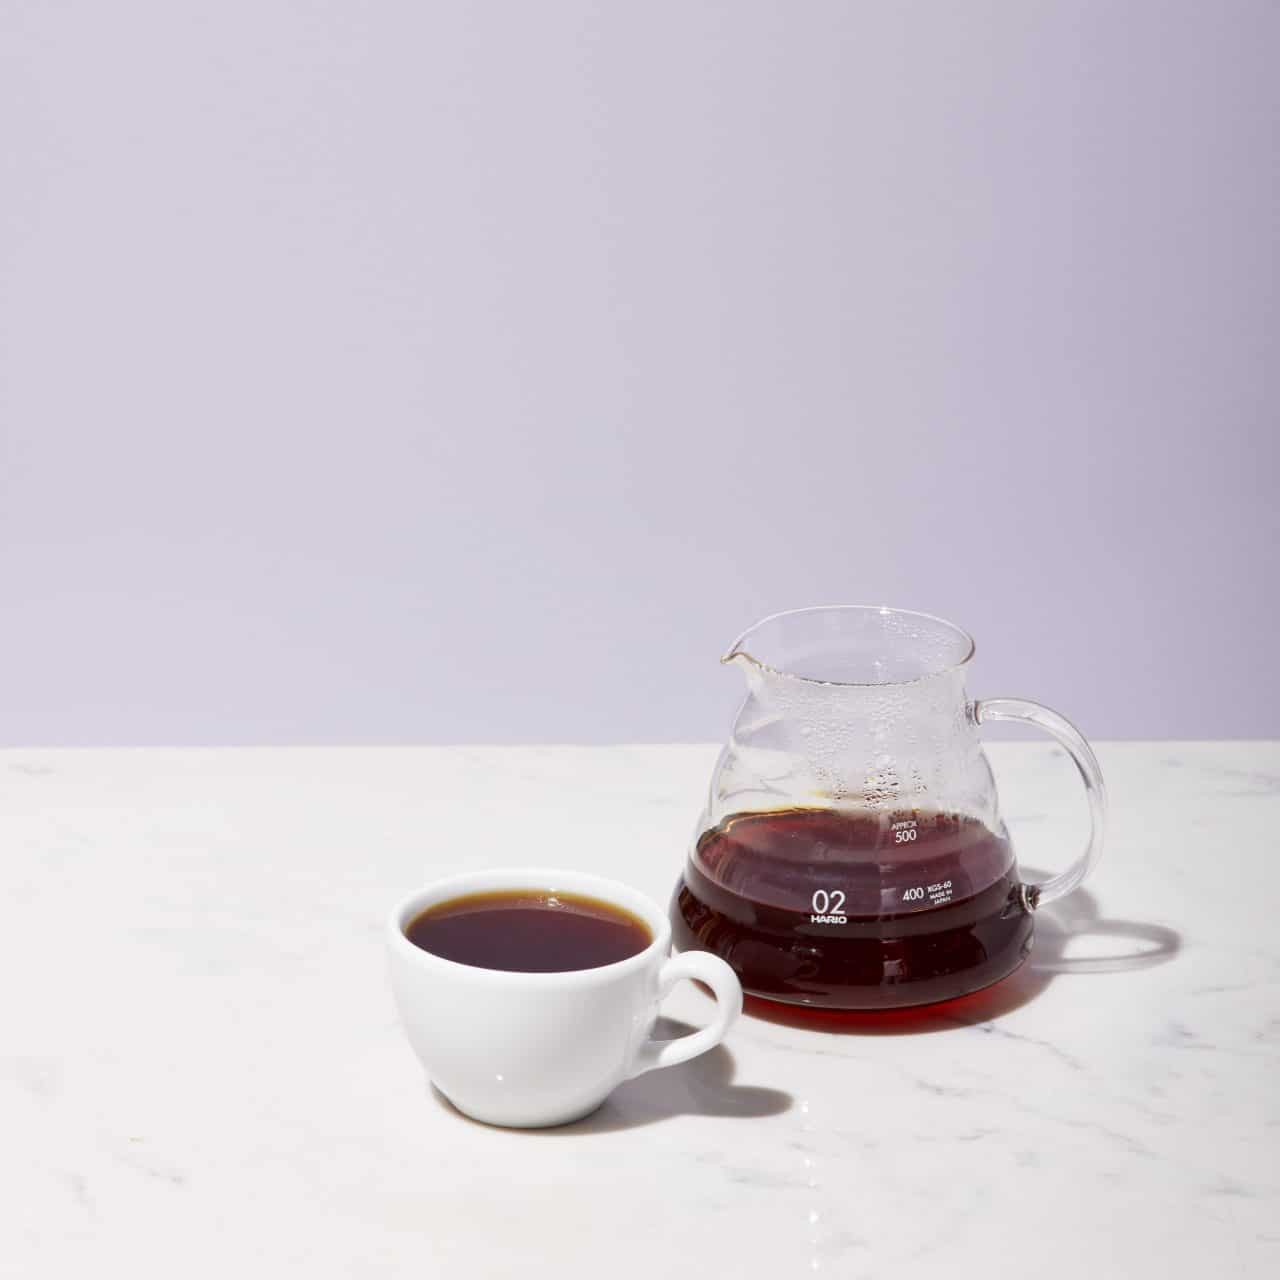 Hario Range Server with a cup of brewed coffee